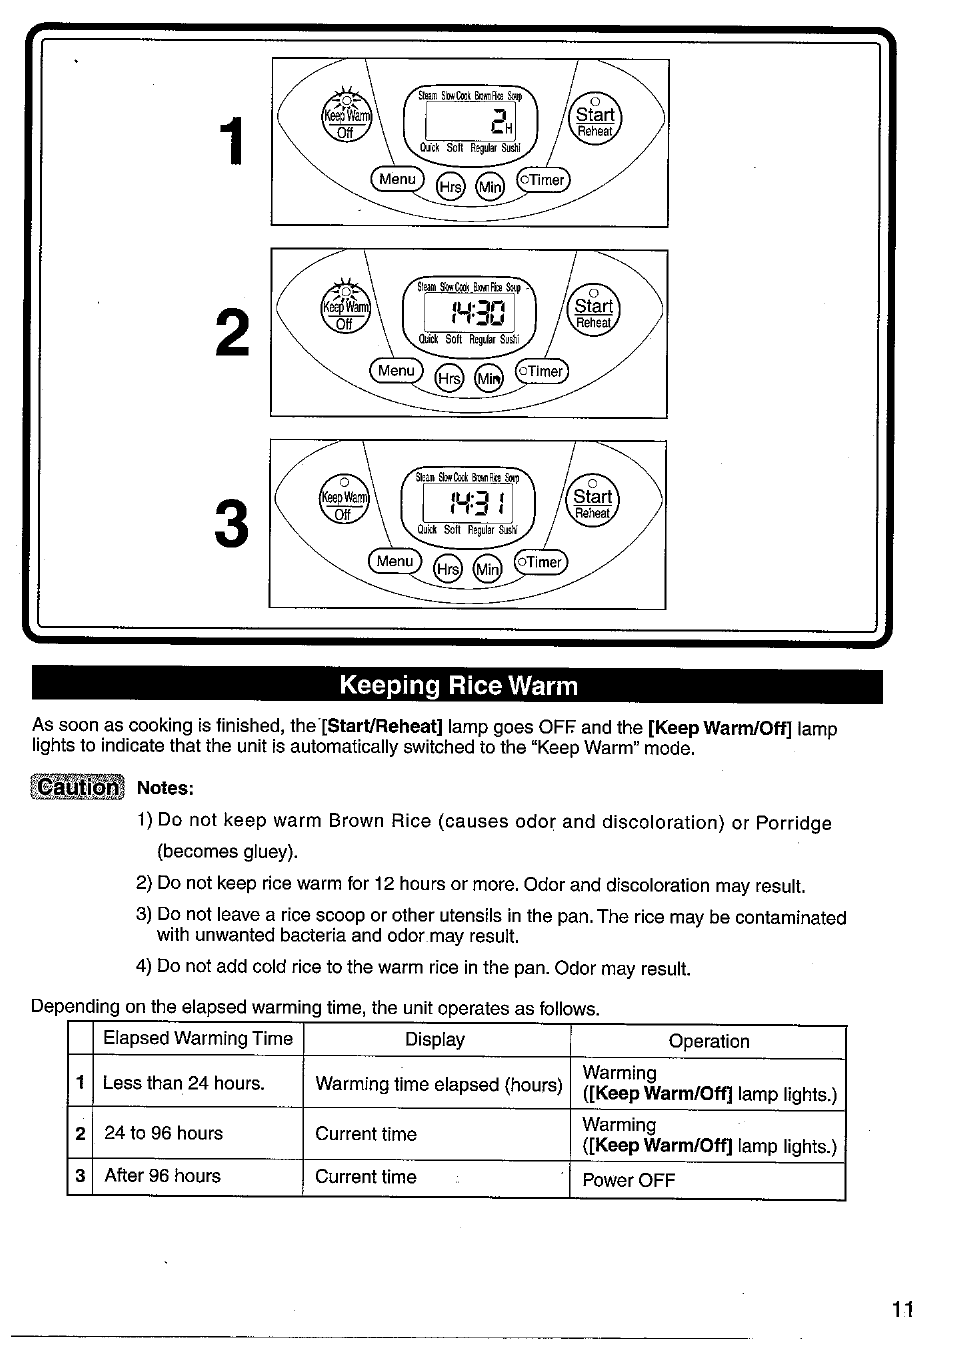 Keeping rice warm | Panasonic SRMM10NS User Manual | Page 11